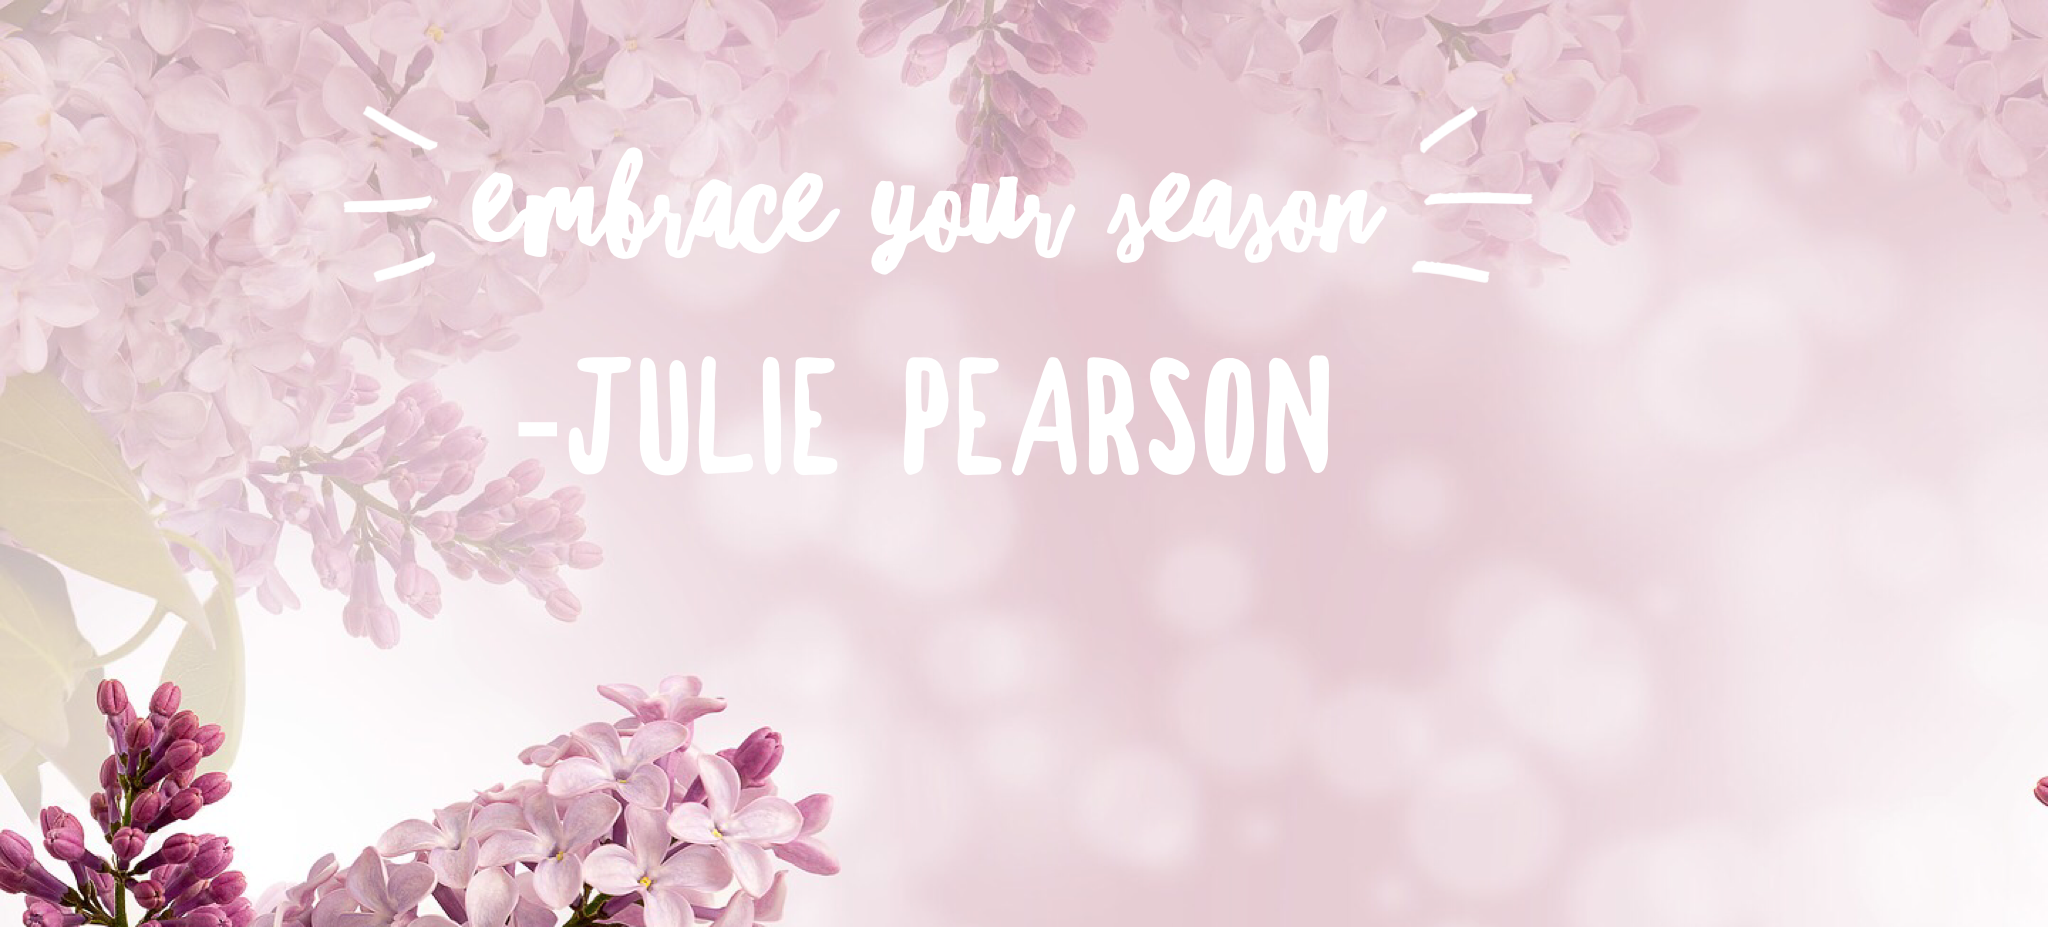 Embrace Your Season